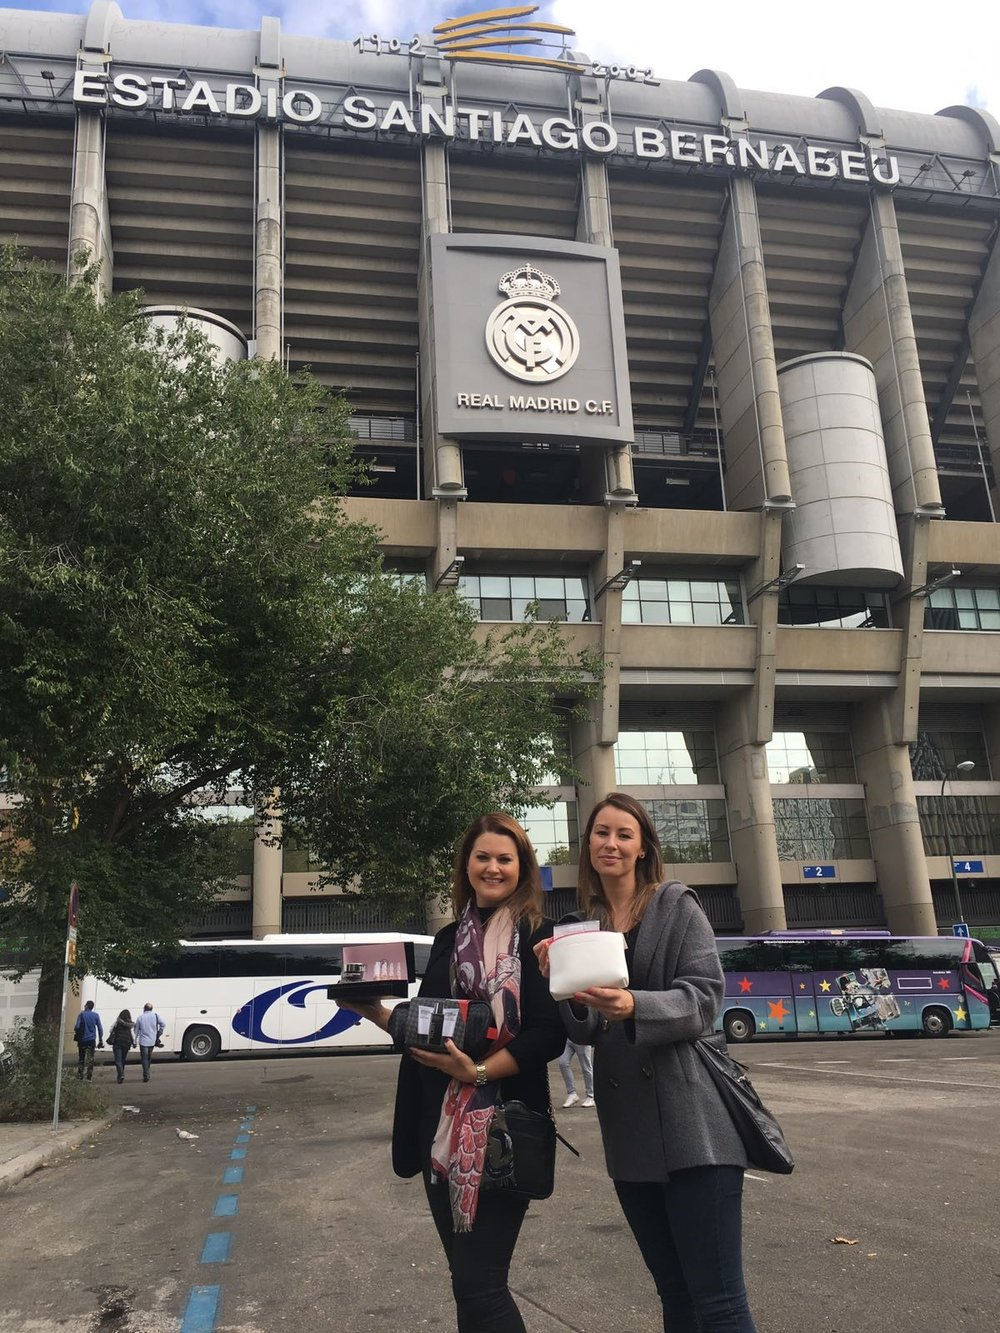 Sarah & Lucie brought Germaine de Capuccini Skincare Gift Sets to Real Madrid's ground!